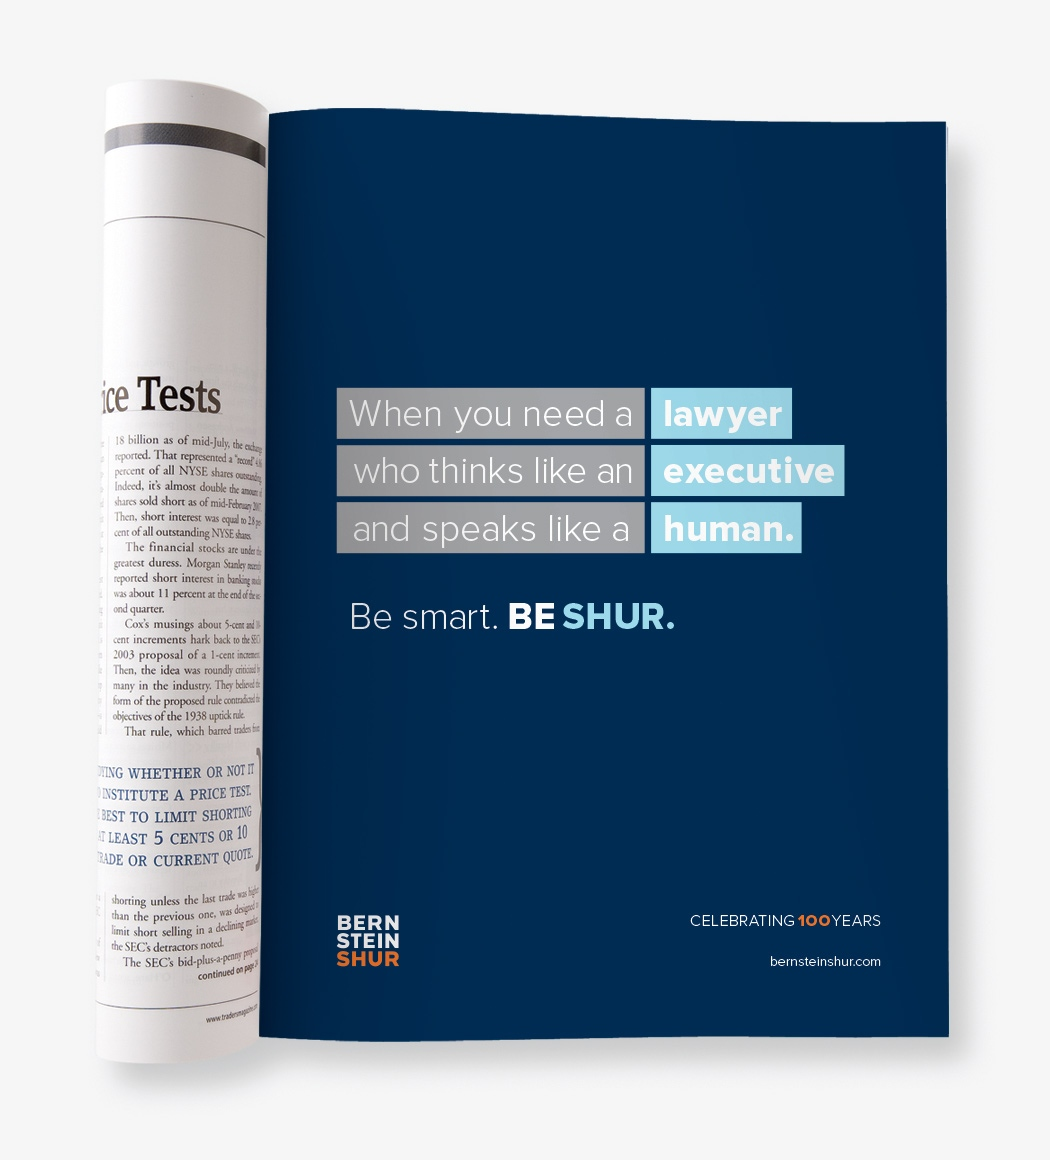 """A Bernstein Shur magazine ad that reads """"When you need a lawyer that thinks like an executive and speaks like a human."""""""